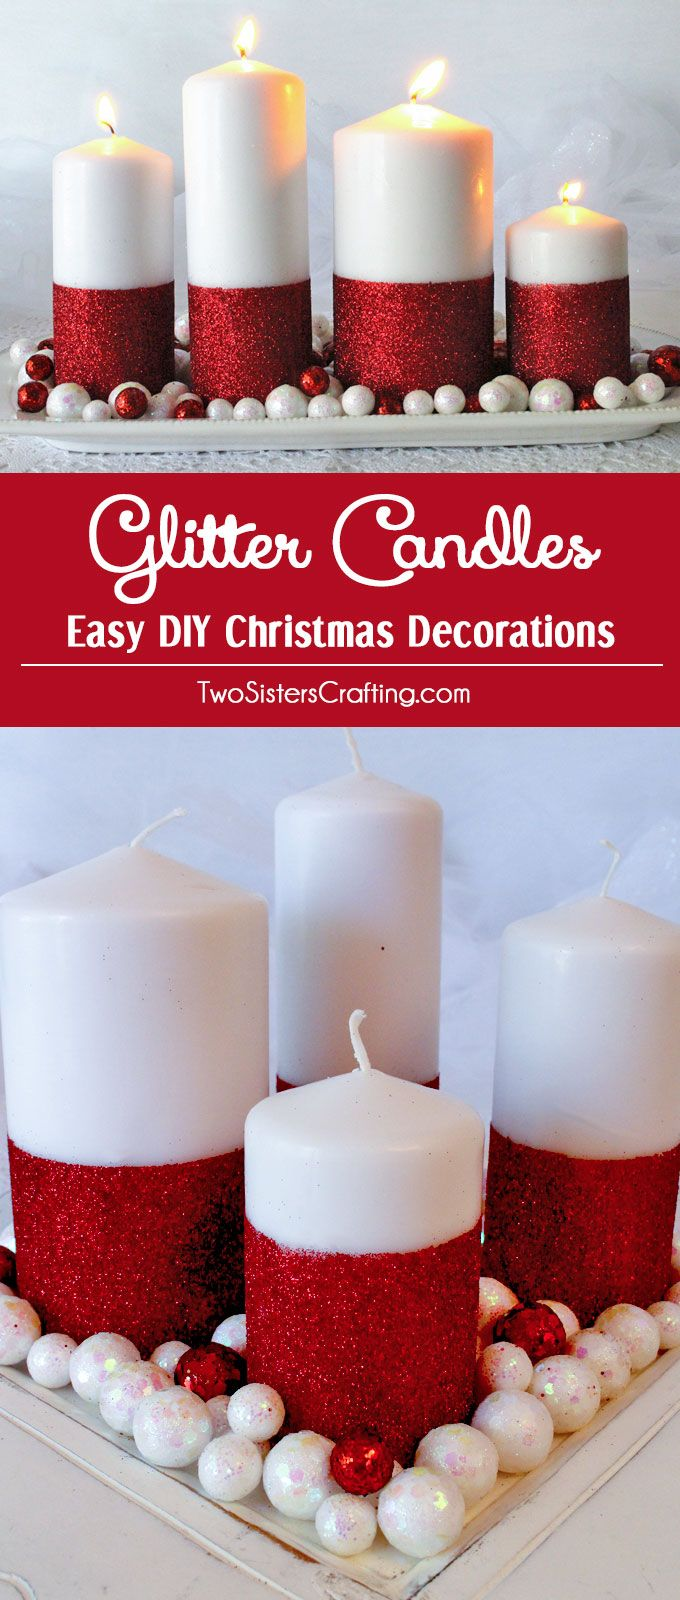 Glitter candles easy diy christmas decorations diy christmas glitter candles easy diy christmas decorations solutioingenieria Image collections